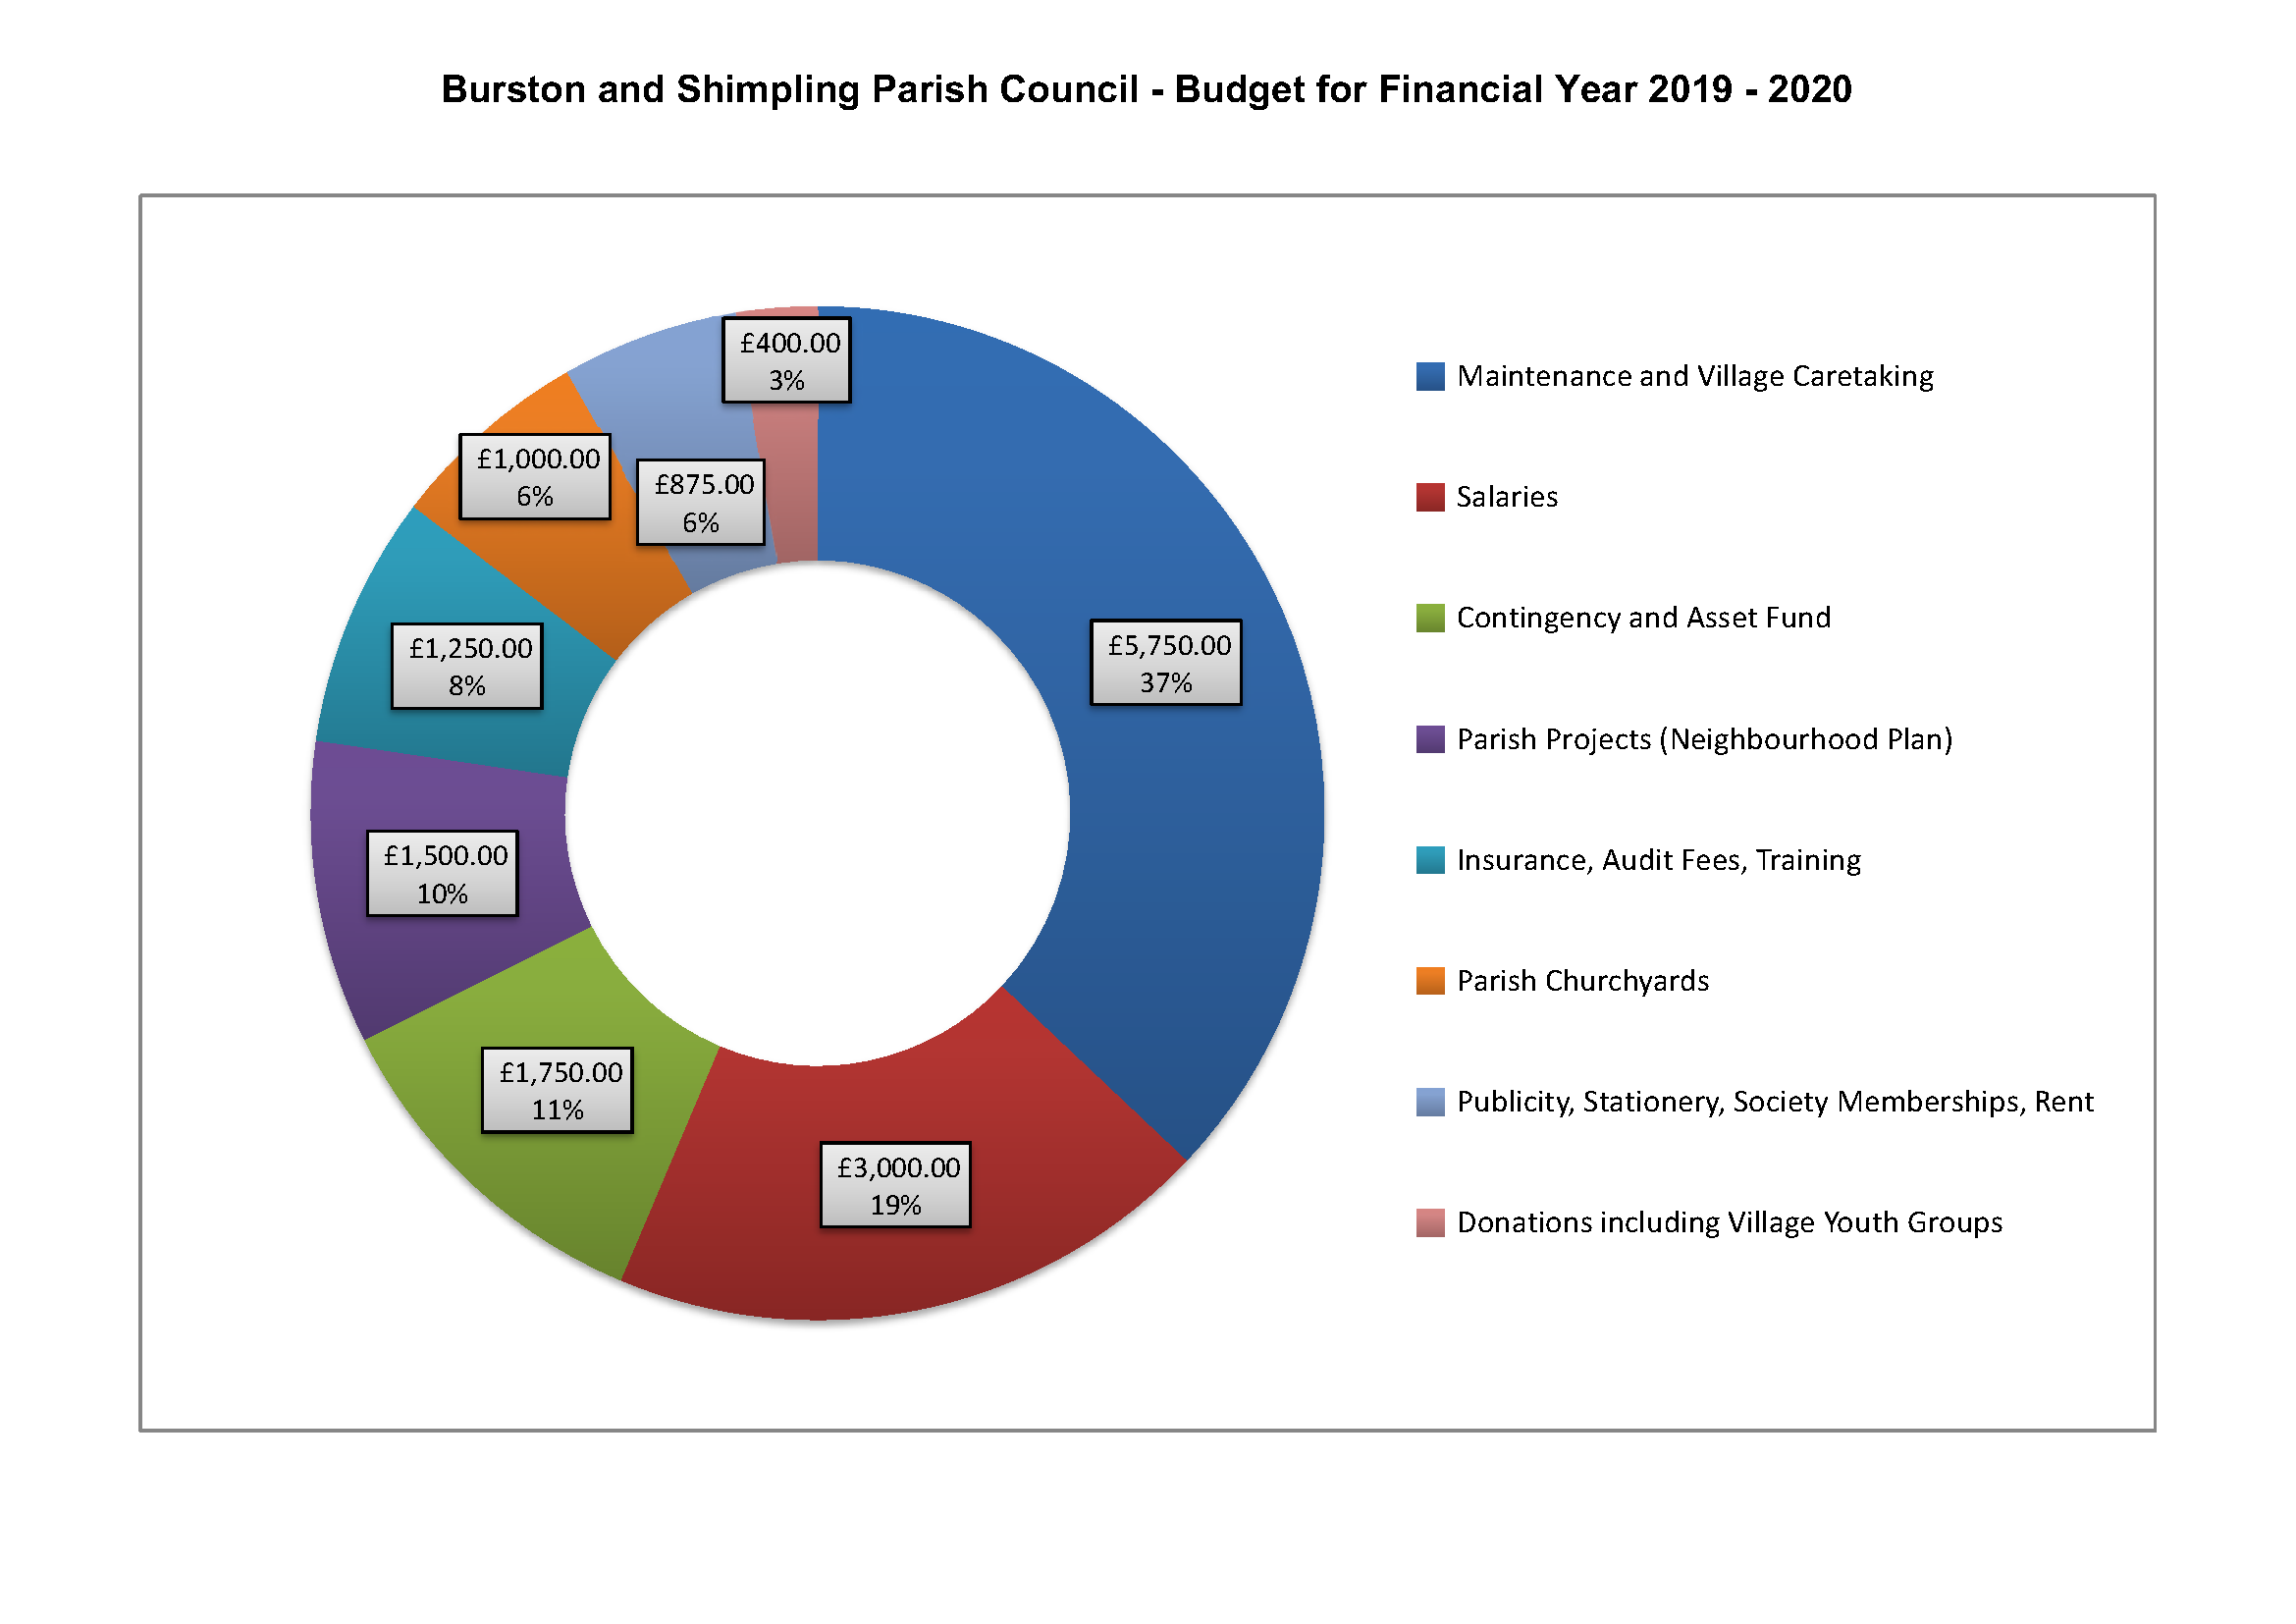 Graphic of Budget Spending